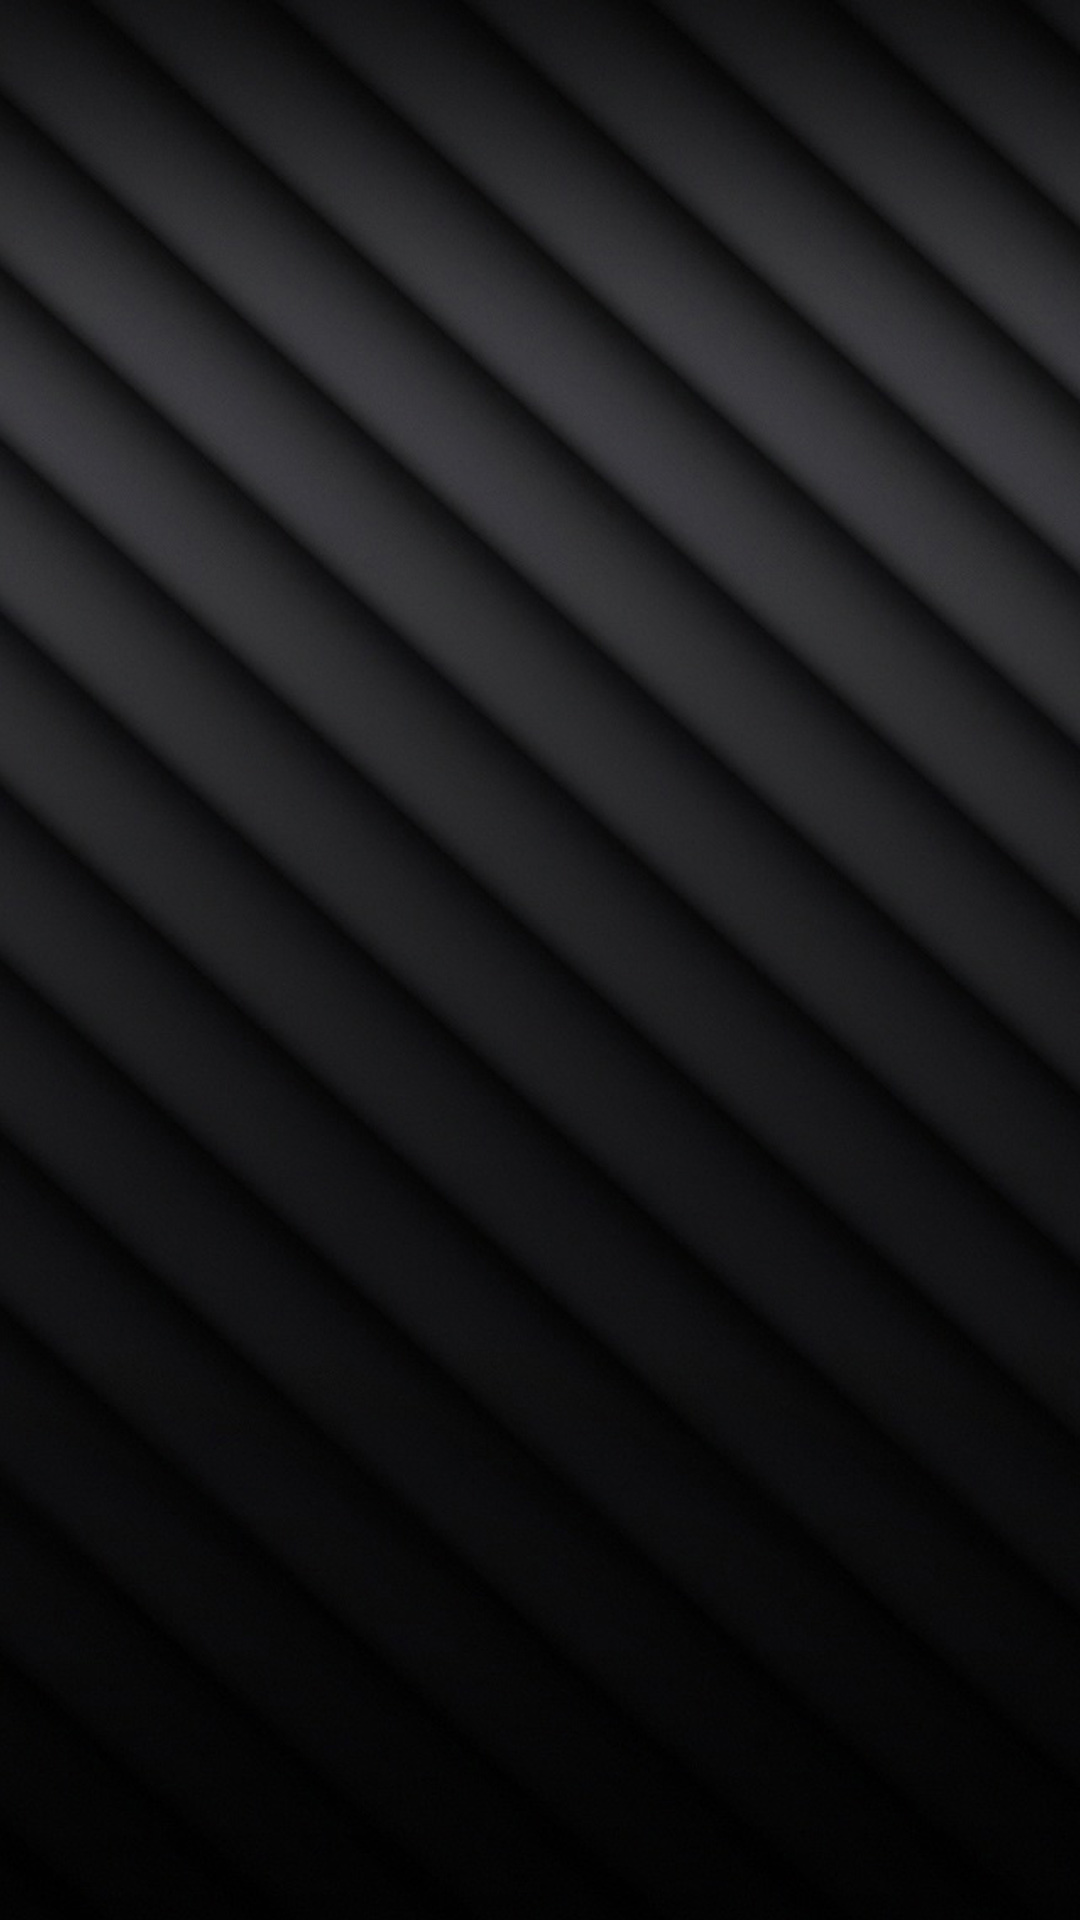 Abstract-Black-Stripes-Note-Samsung-Galaxy-Note-wallpaper-wp423395-1